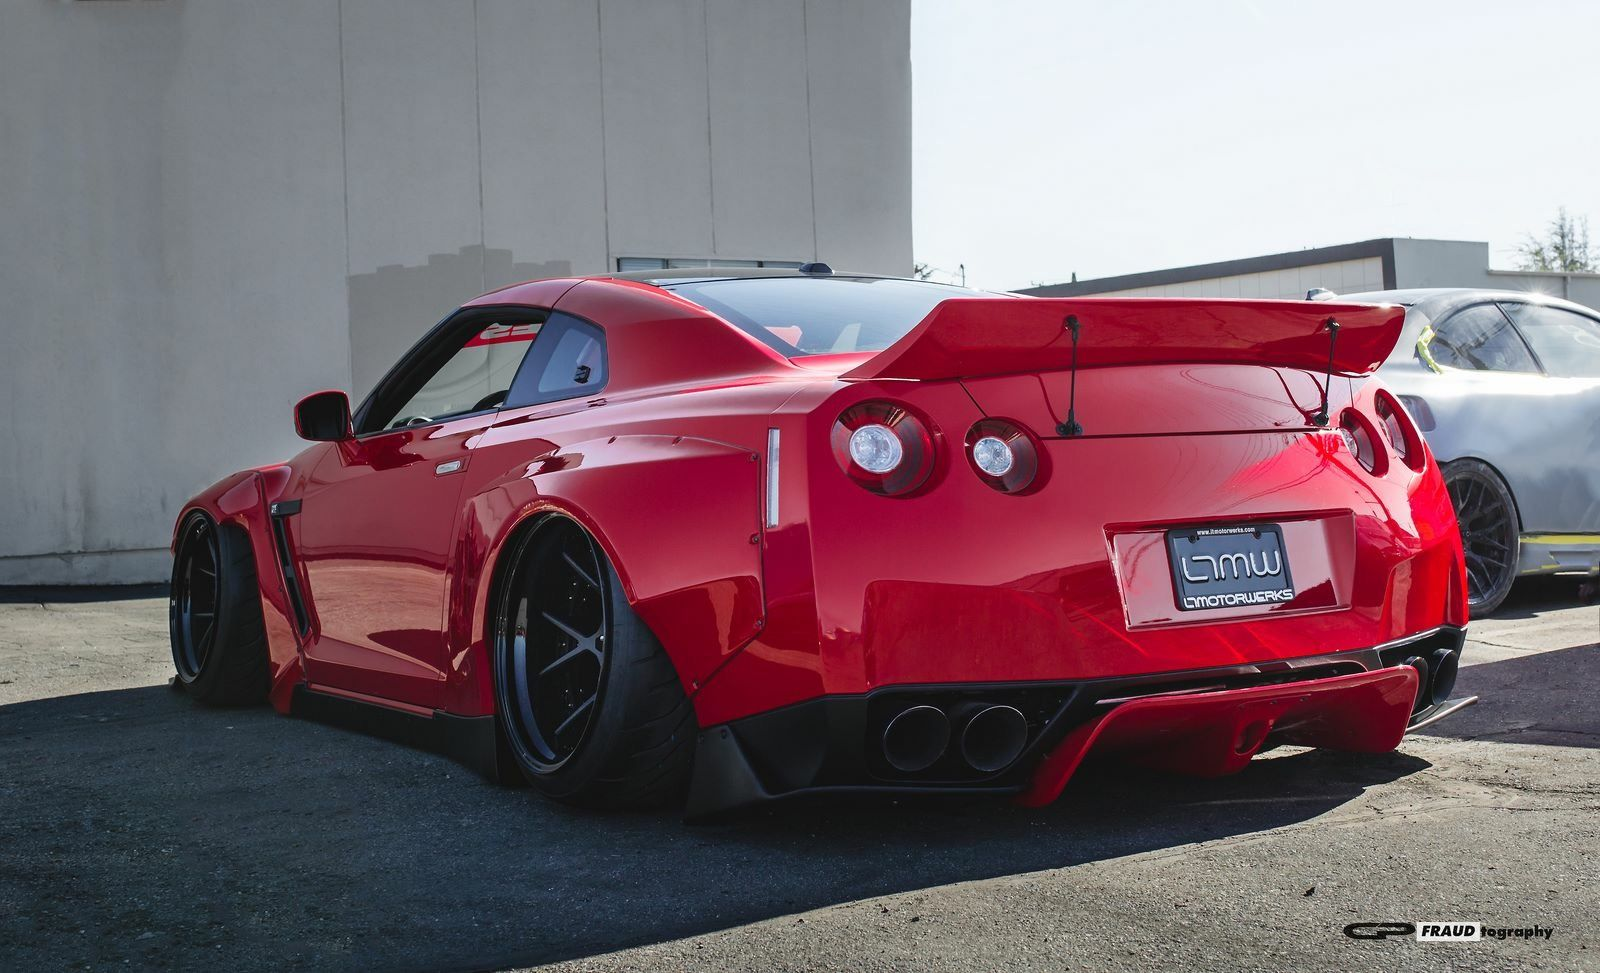 nissan gtr r35 modified widebody nissan skylines gtr pinterest nissan gtr r35 gtr r35 and. Black Bedroom Furniture Sets. Home Design Ideas